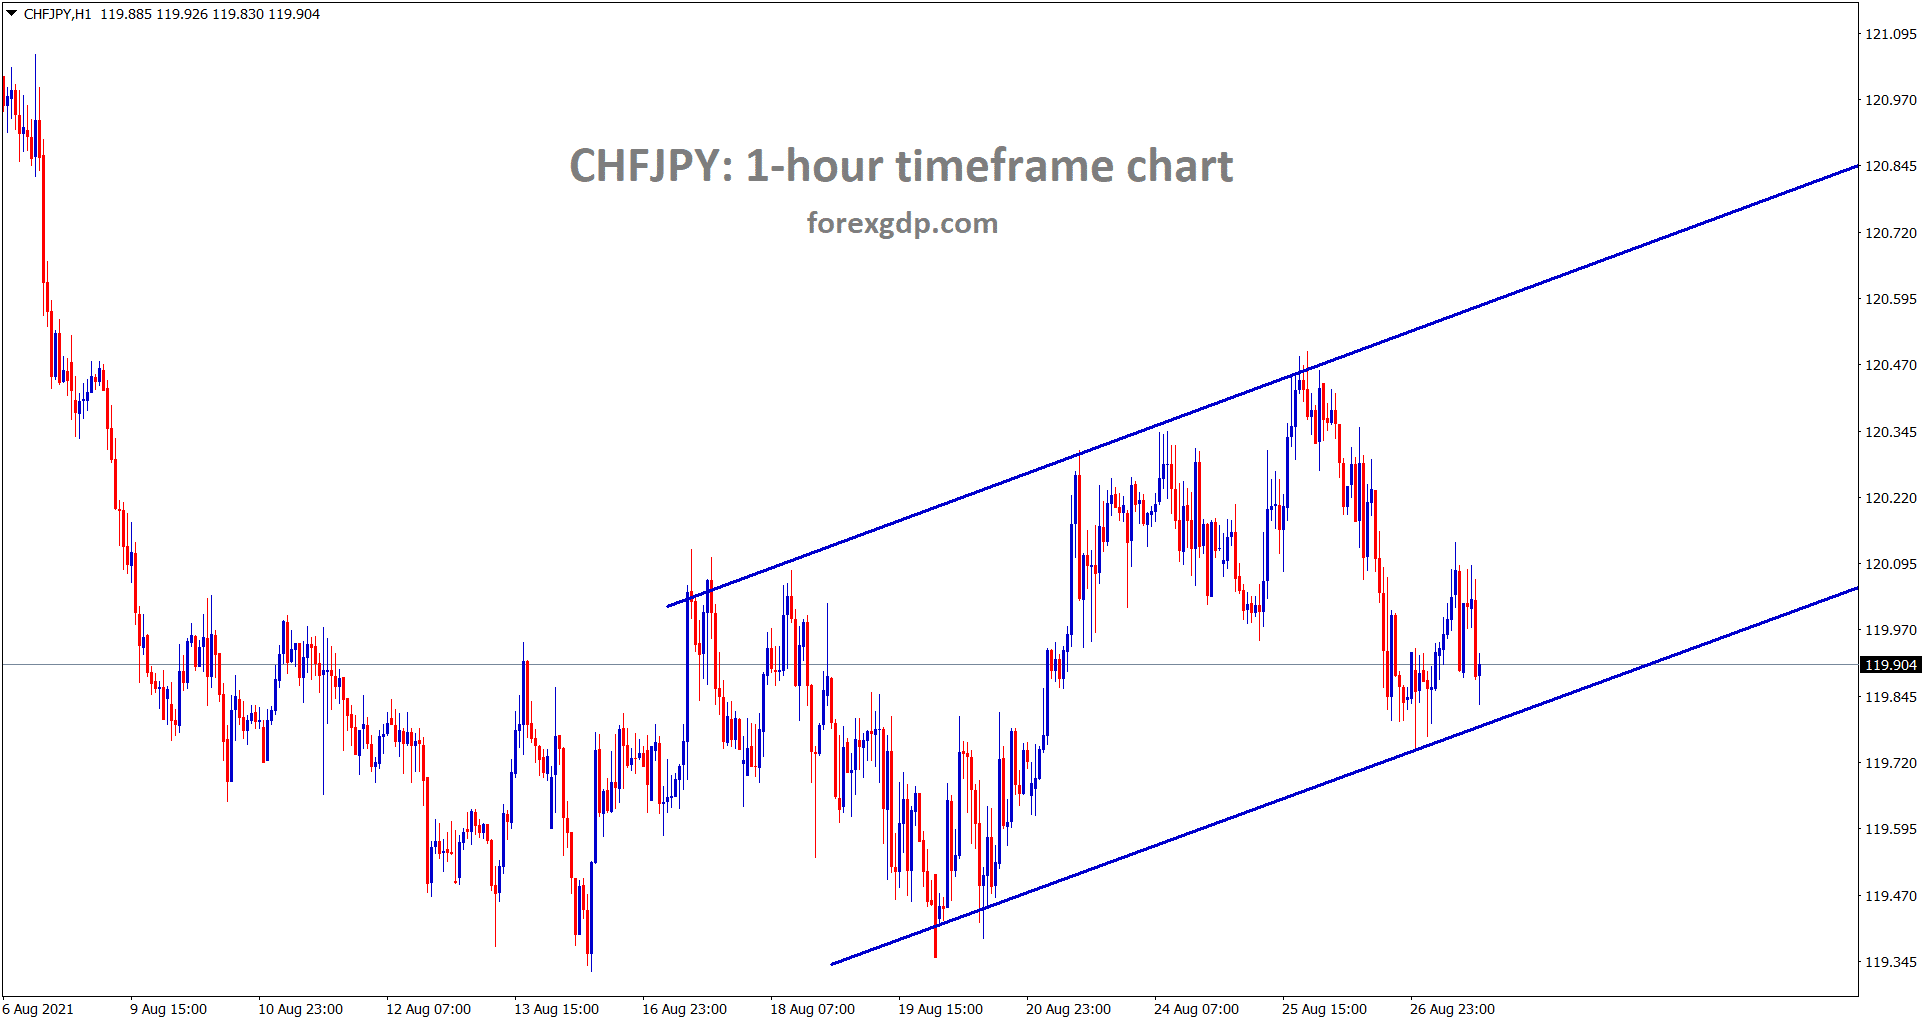 CHFJPY is consolidating between the ranges in the h1 chart